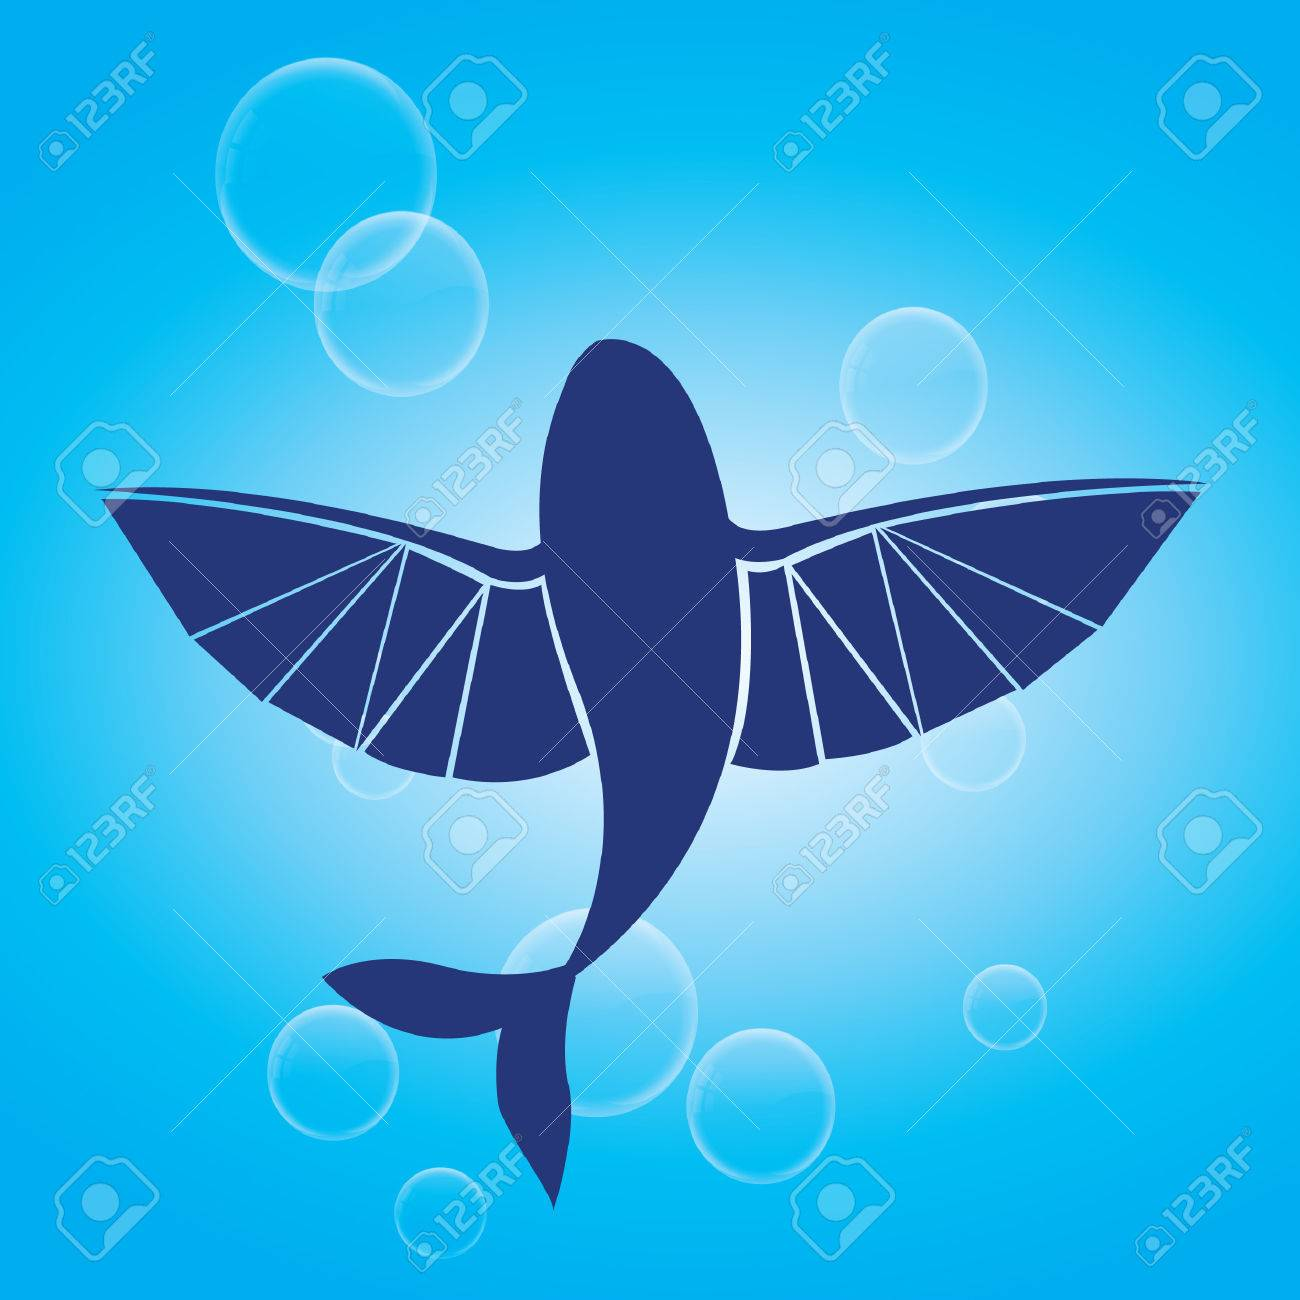 Silhouette Of Flying Fish Royalty Free Cliparts Vectors And Stock